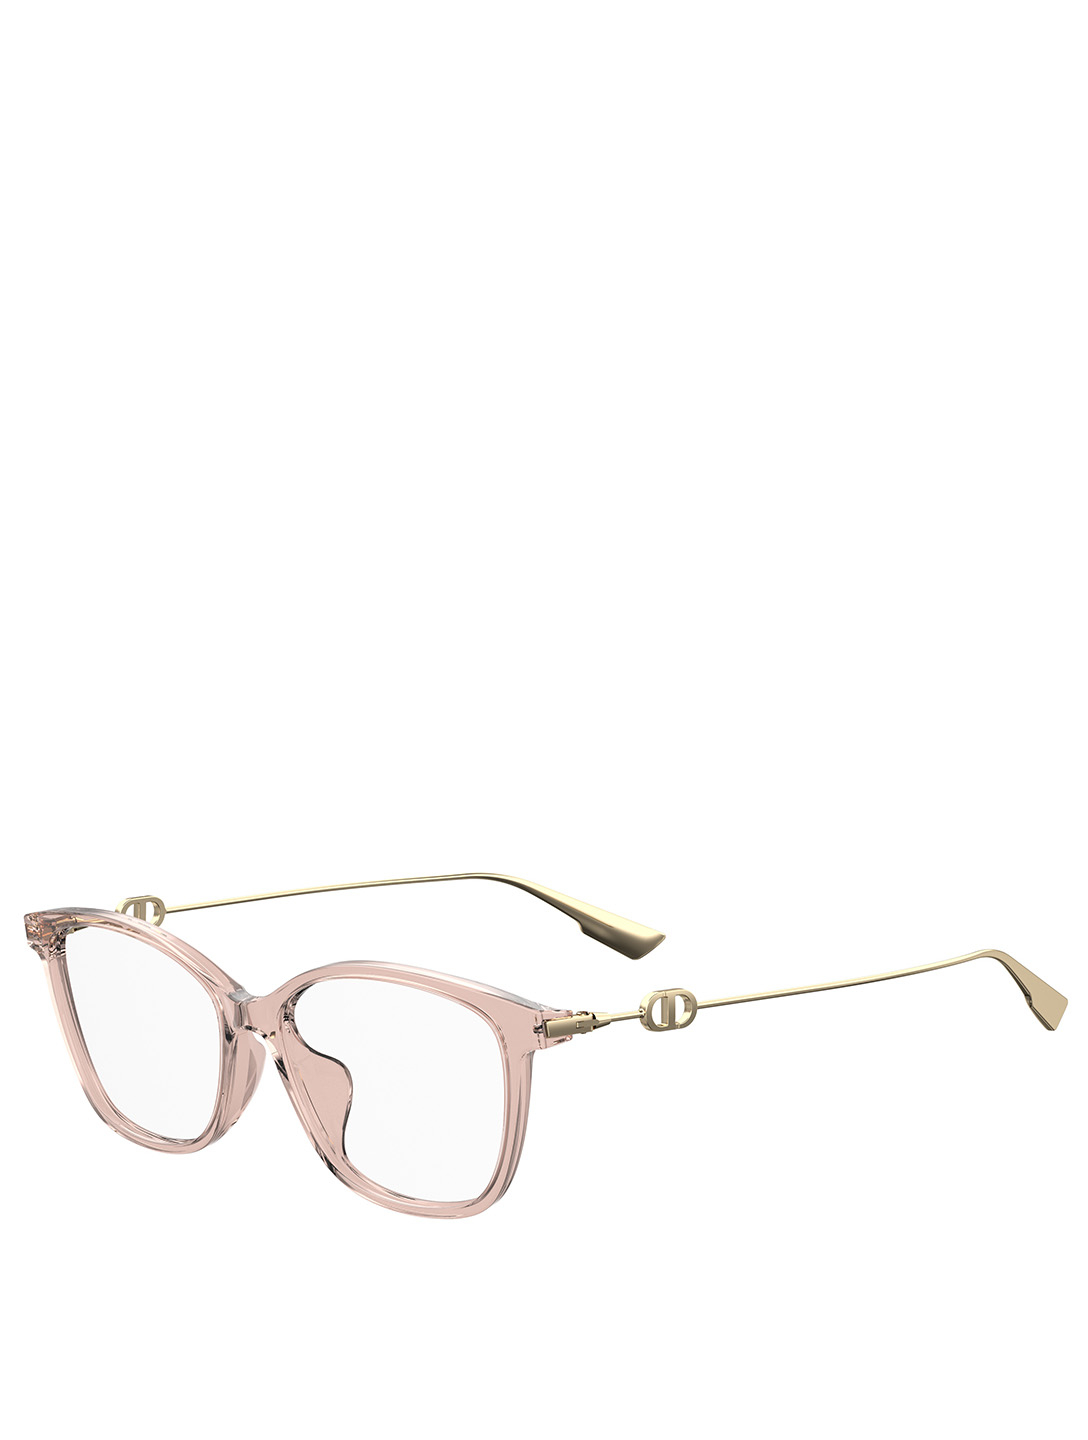 DIOR DiorSightO1F Square Optical Glasses Women's Pink